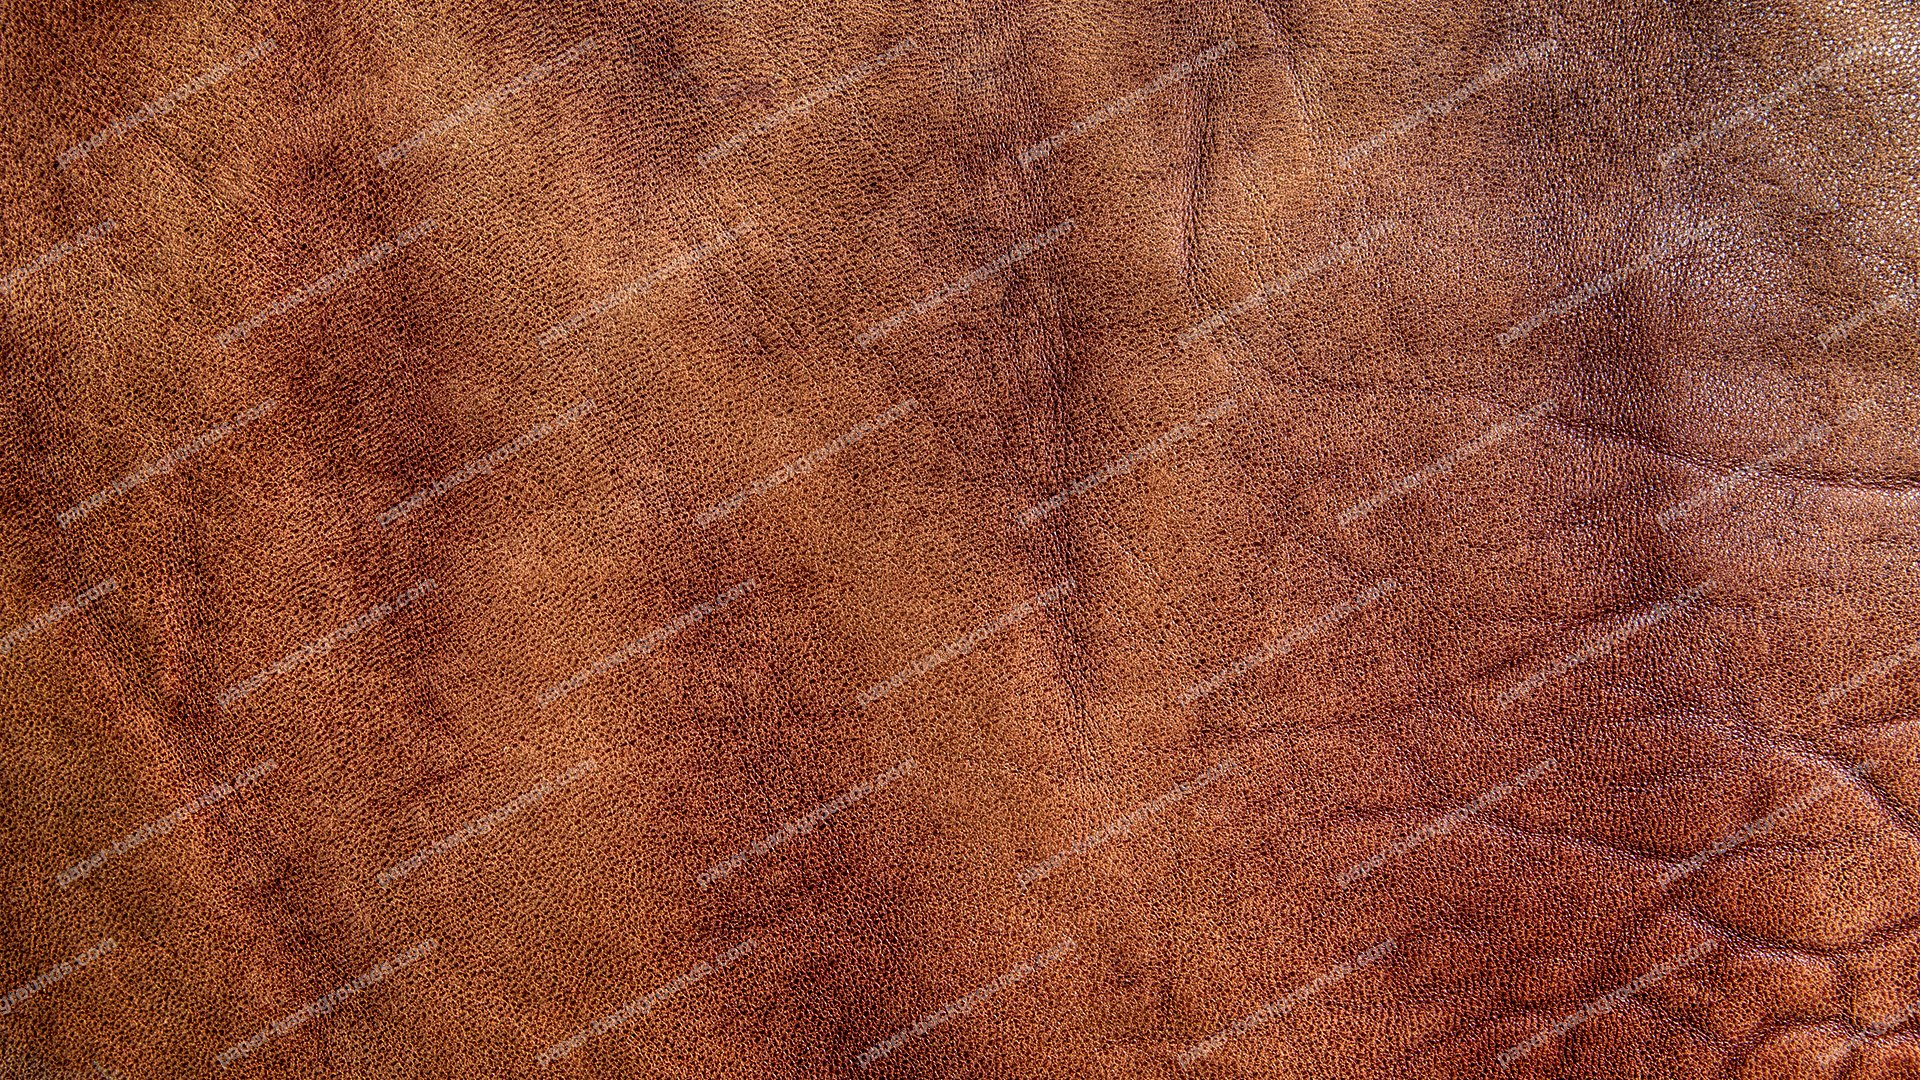 dark-grunge-leather-texture-hd